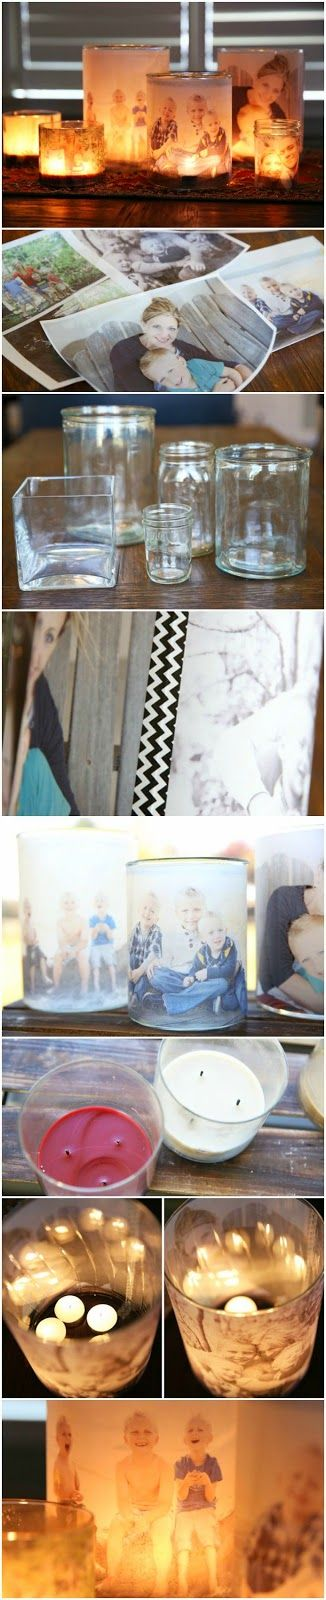 Best DIY Projects: Glowing Photo Luminaries – From Our Best Bites ...